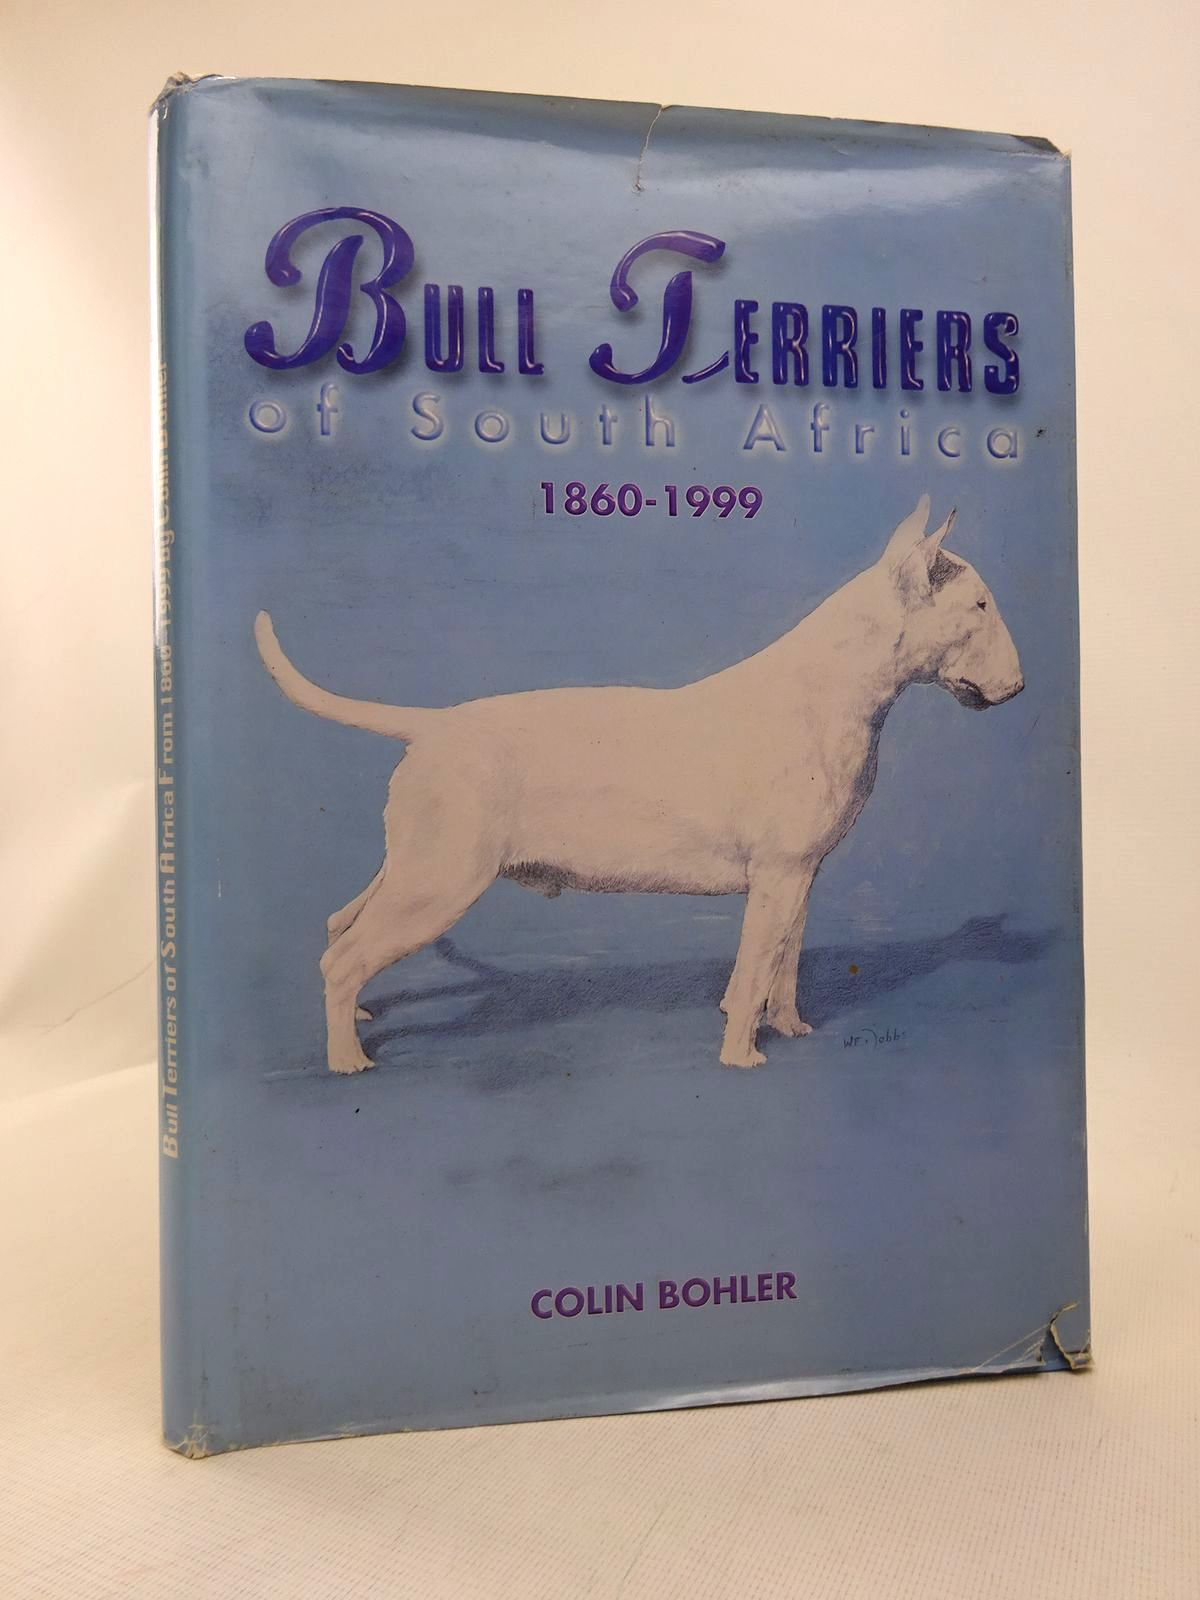 Photo of BULL TERRIERS OF SOUTH AFRICA 1860-1999 written by Bohler, Colin published by Sarah Bohler (STOCK CODE: 1816782)  for sale by Stella & Rose's Books